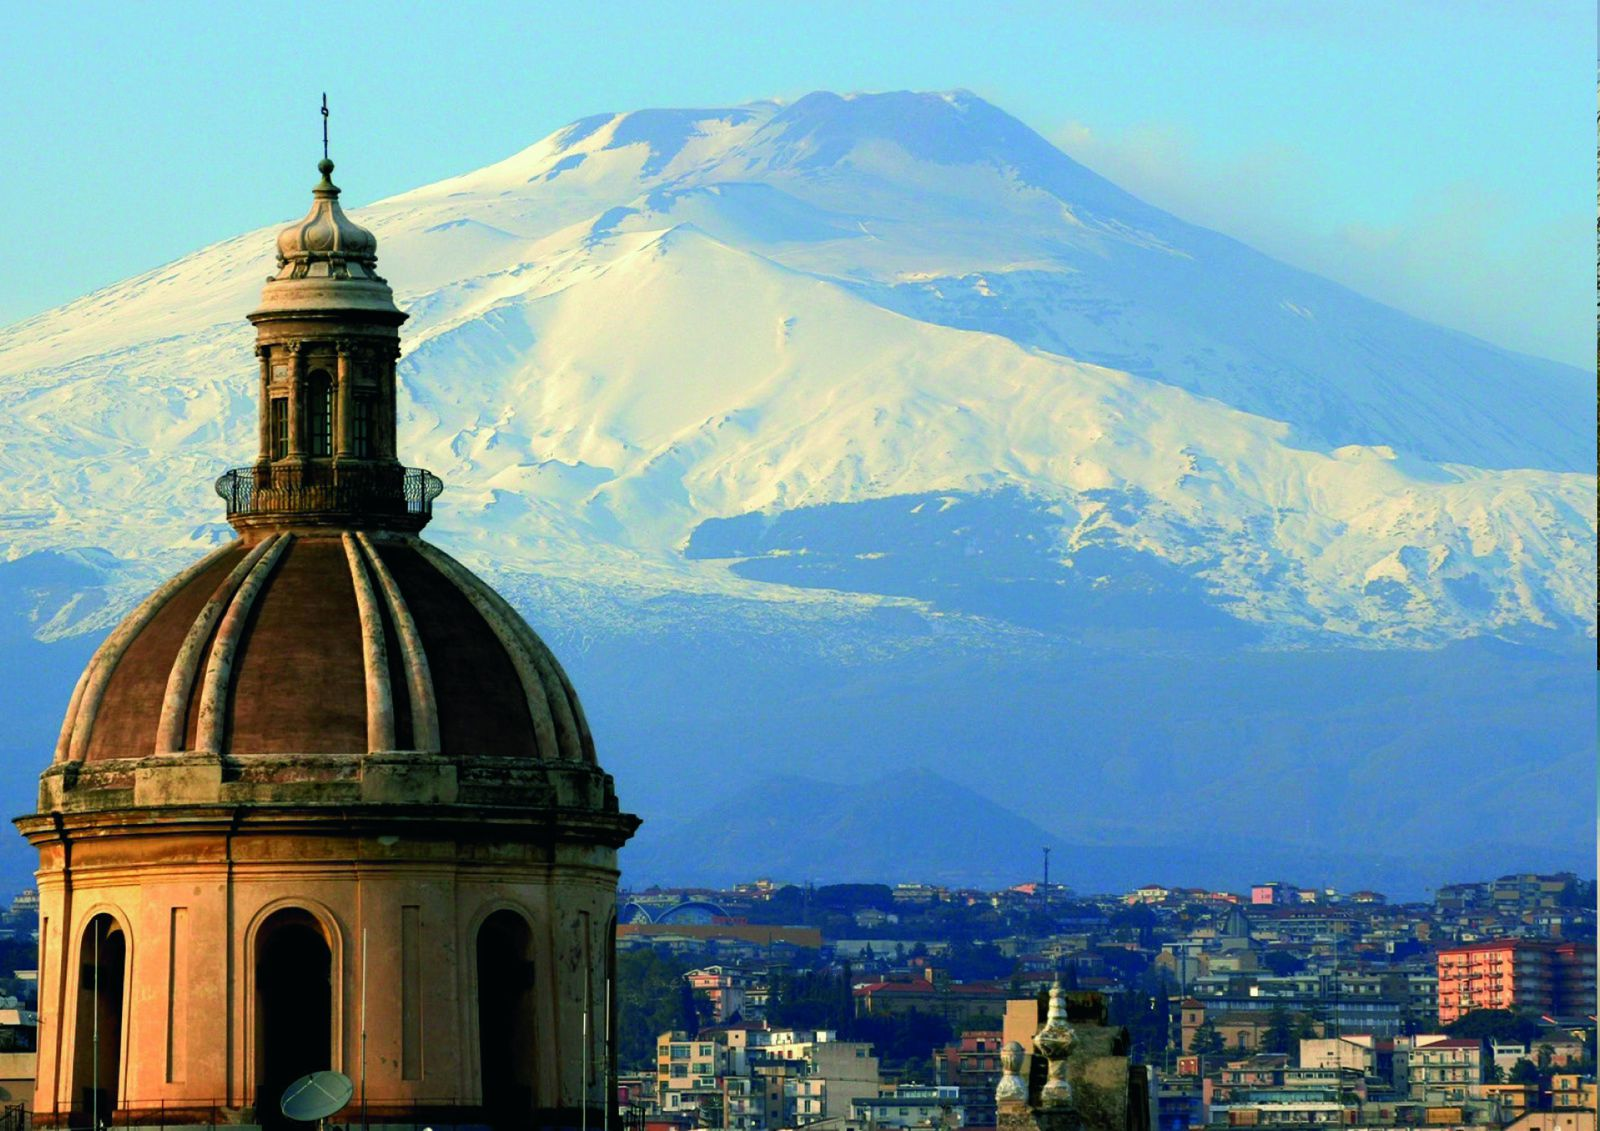 L'Etna domine la ville de Catania - photo Dossier presse Arte Tv